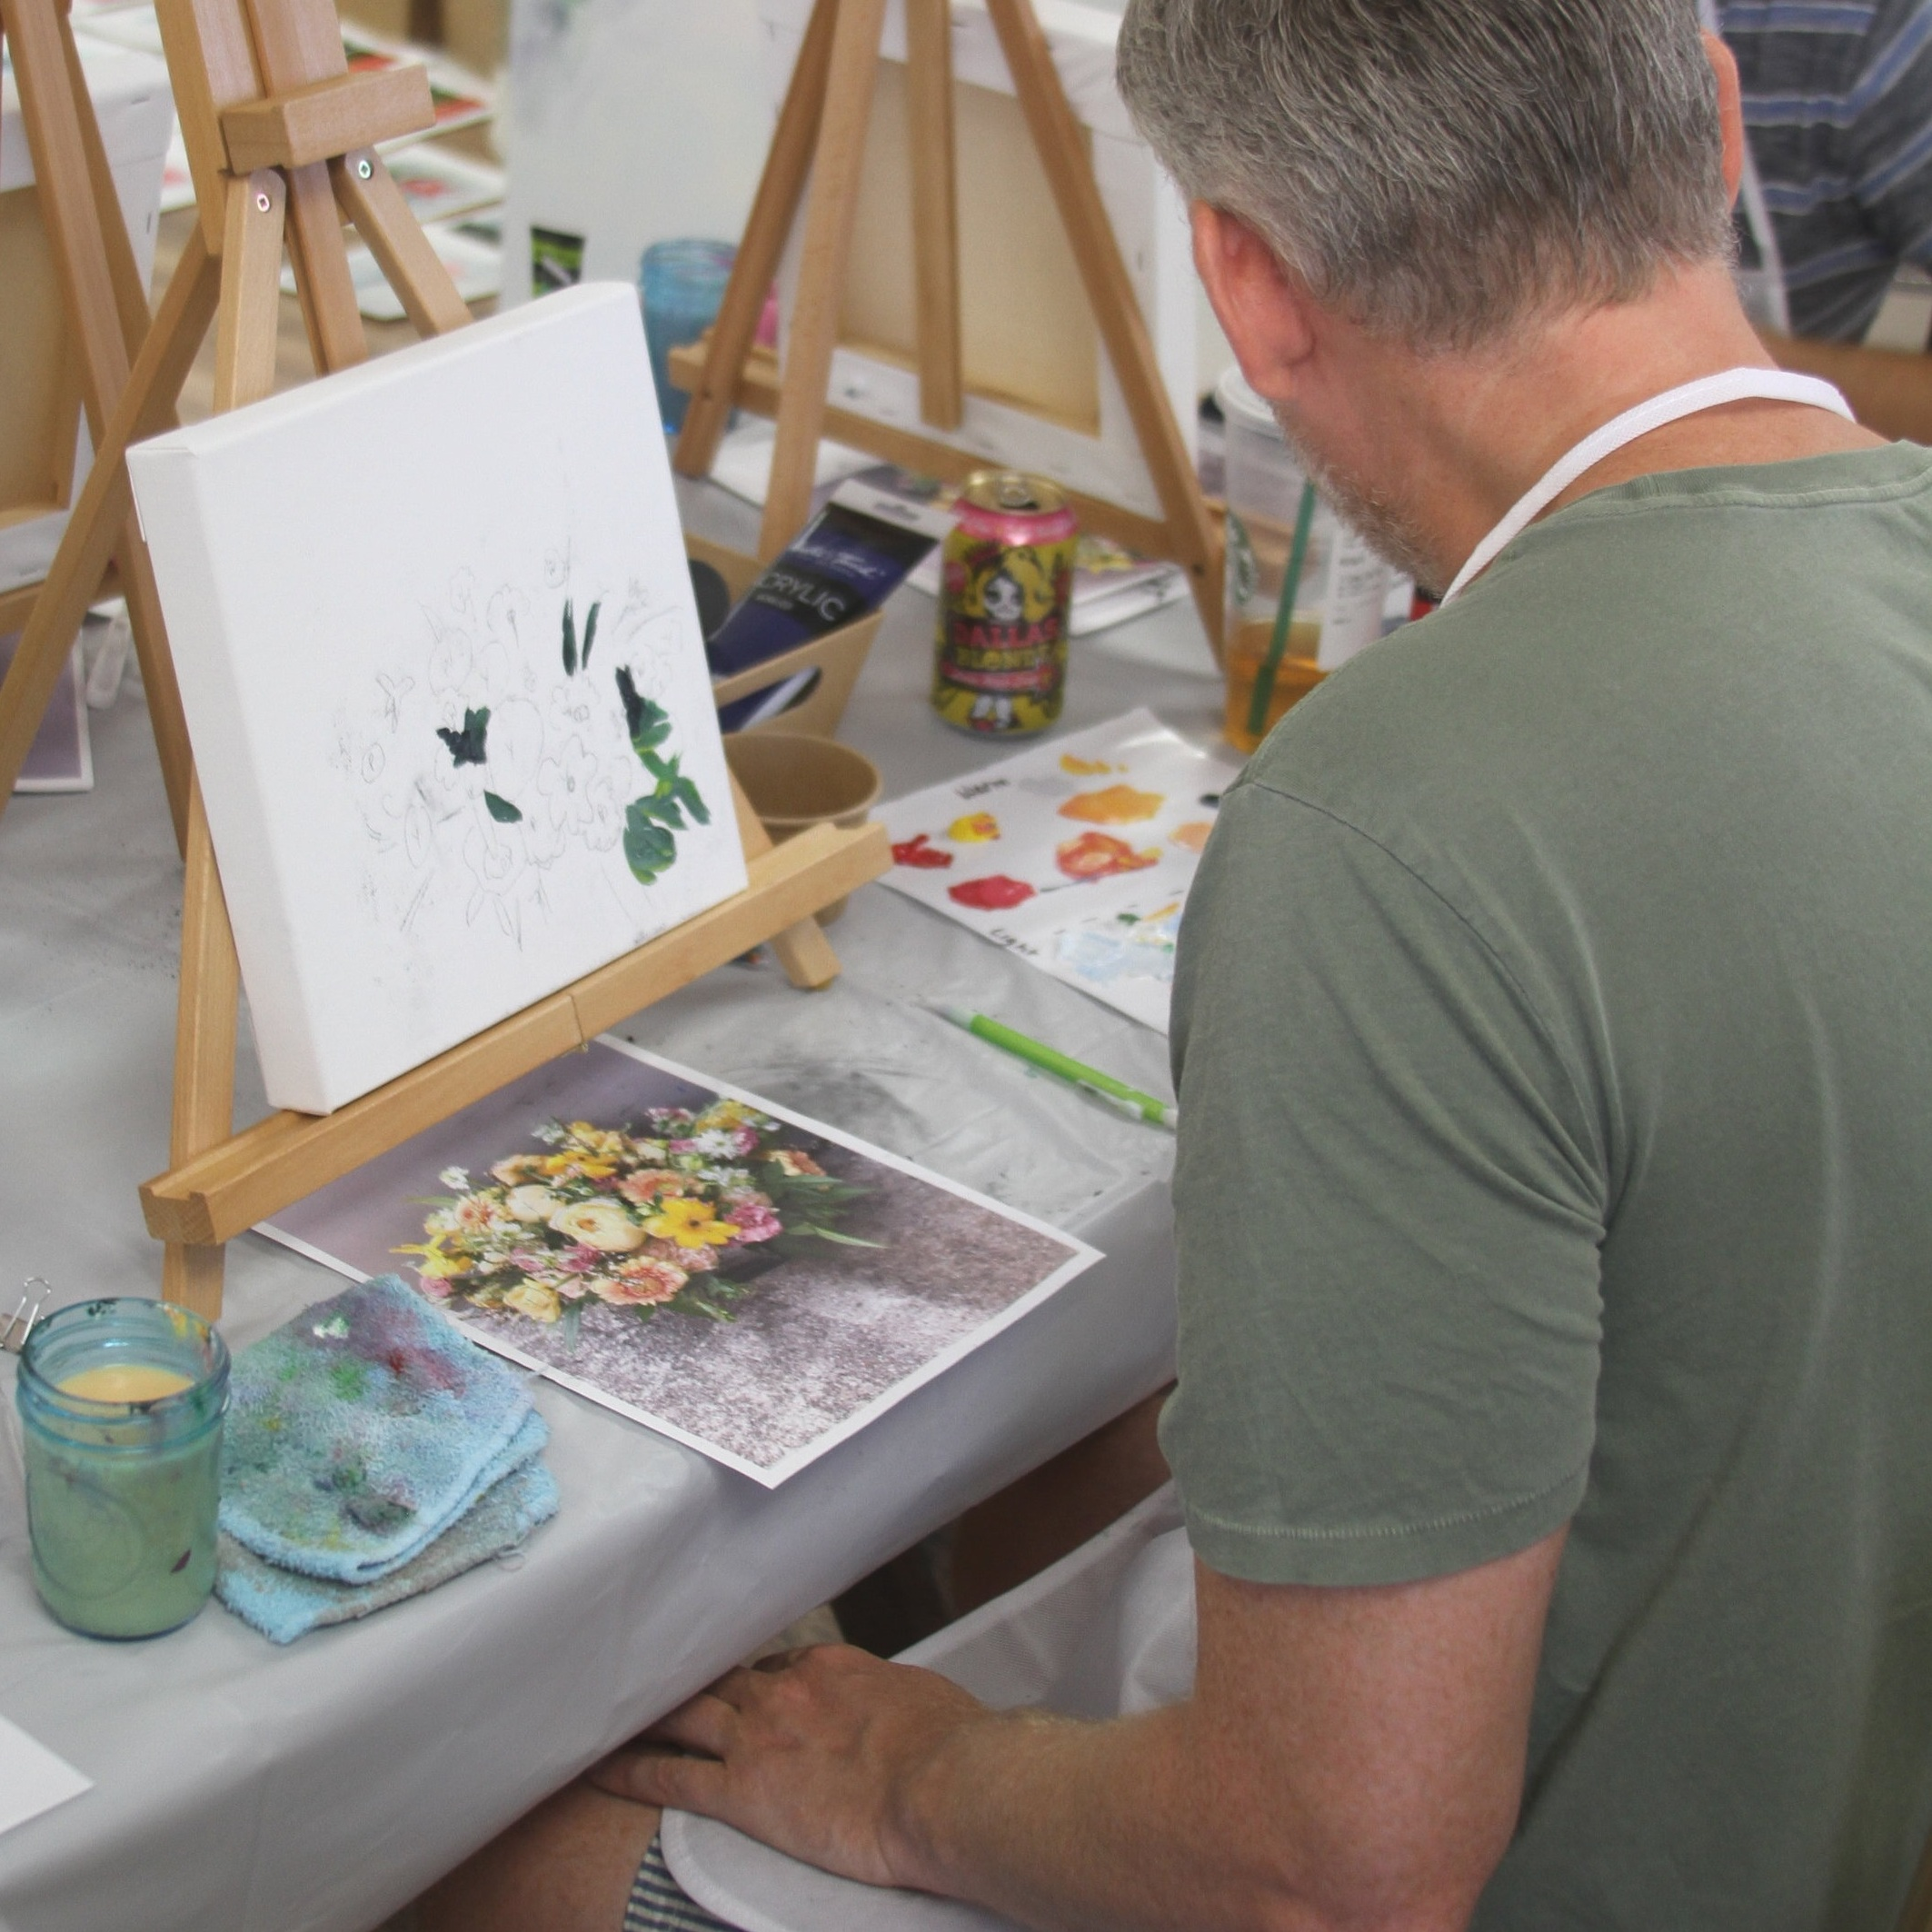 Your Workshop - Learn composition, value, color theory, and painting techniques. Create workbook studies and impressionistic paintings!Be confident to start your own studio (or, just have a super fun afternoon).